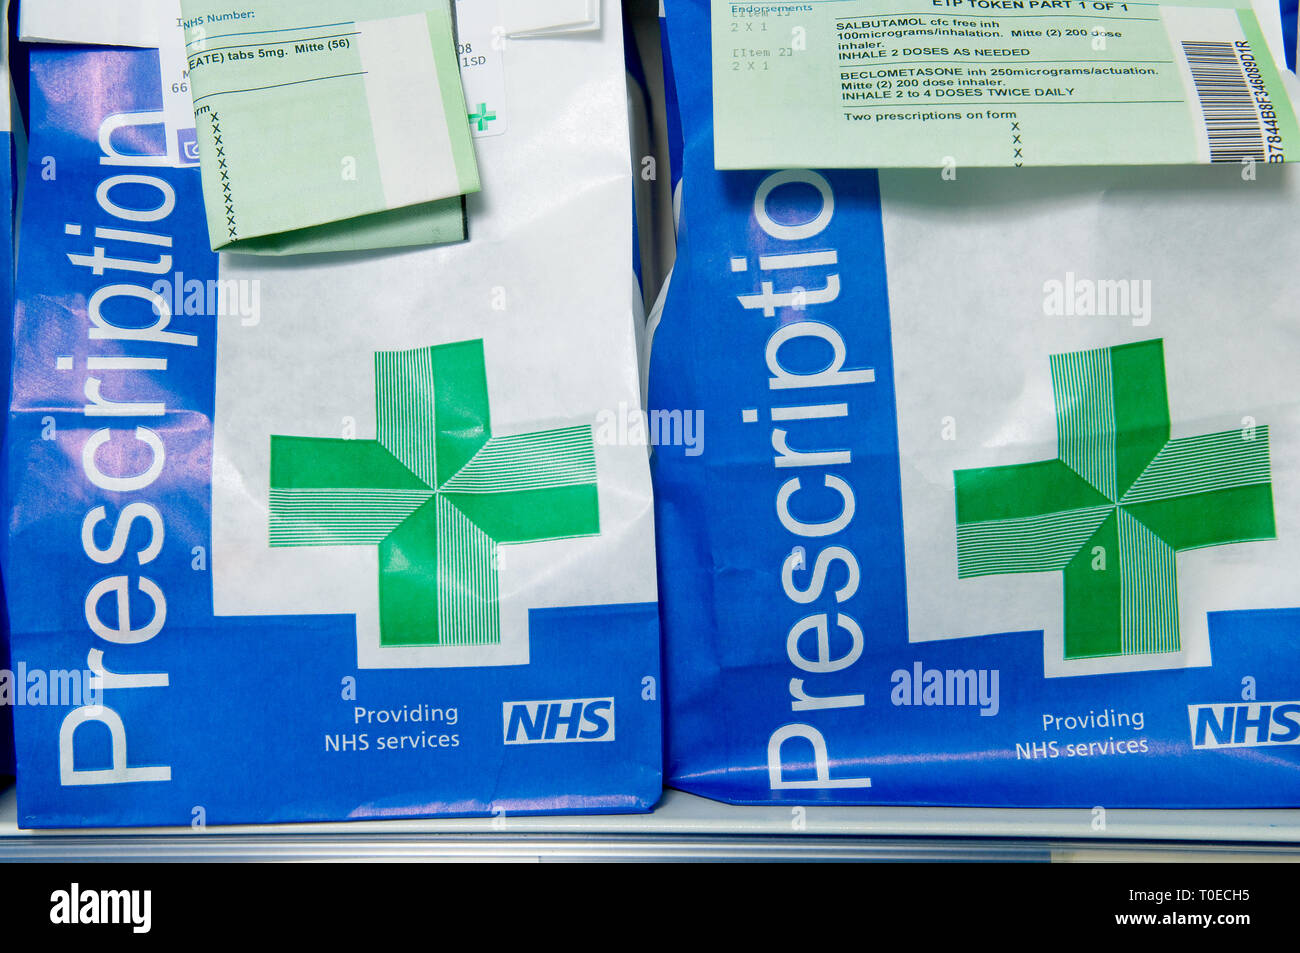 Paper bags of NHS prescriptions ready to collect with the prescription attached to ID the contents. - Stock Image